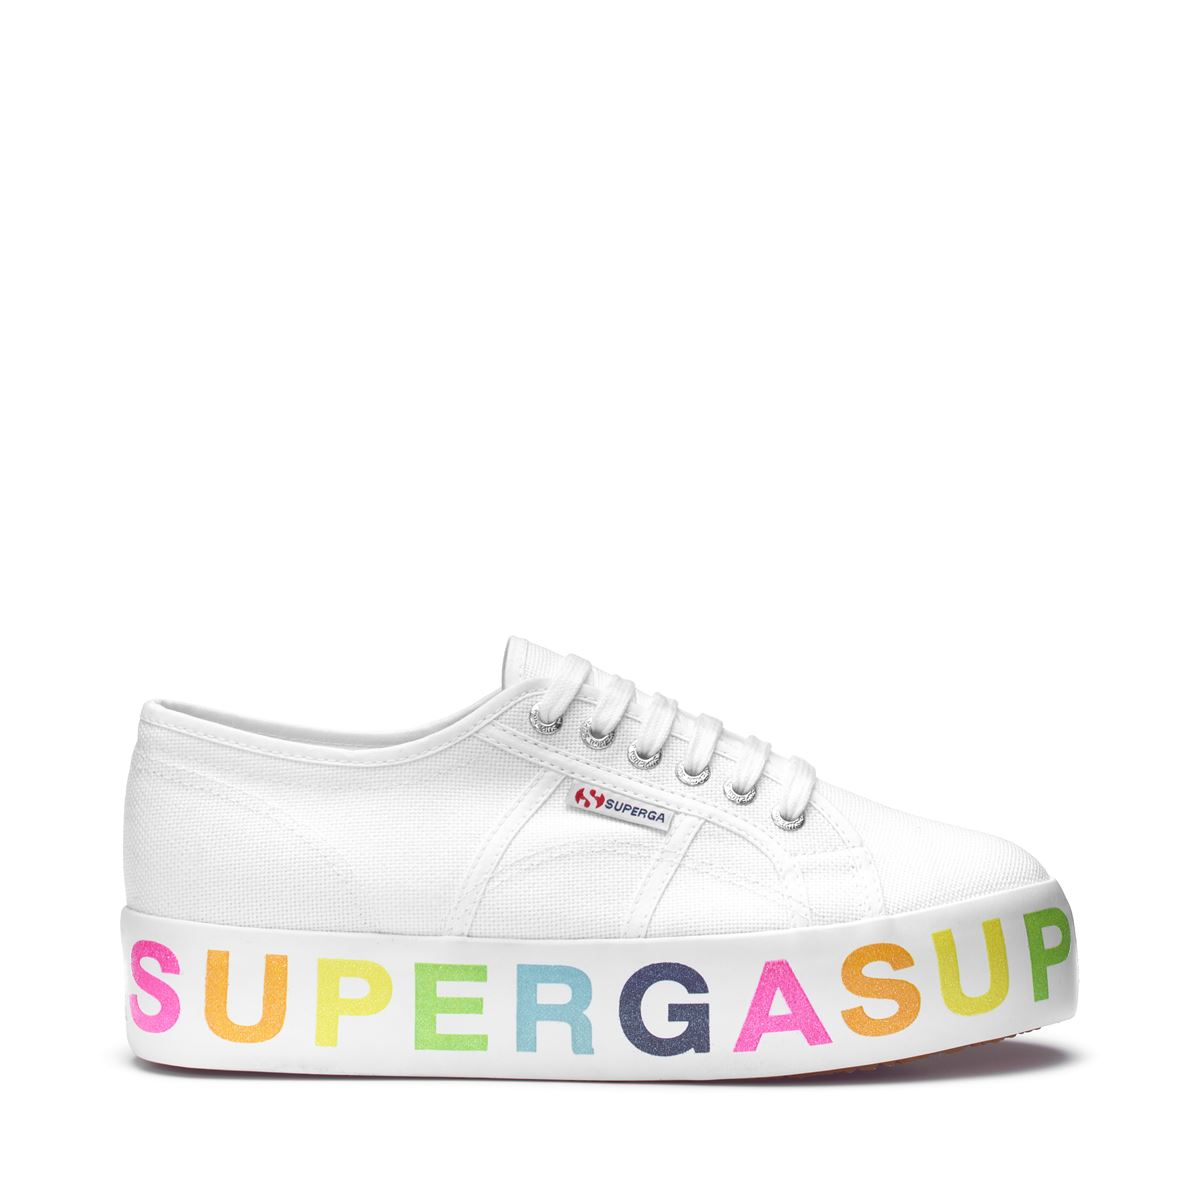 Italian Lady Shoes Superga for woman-S111TRW